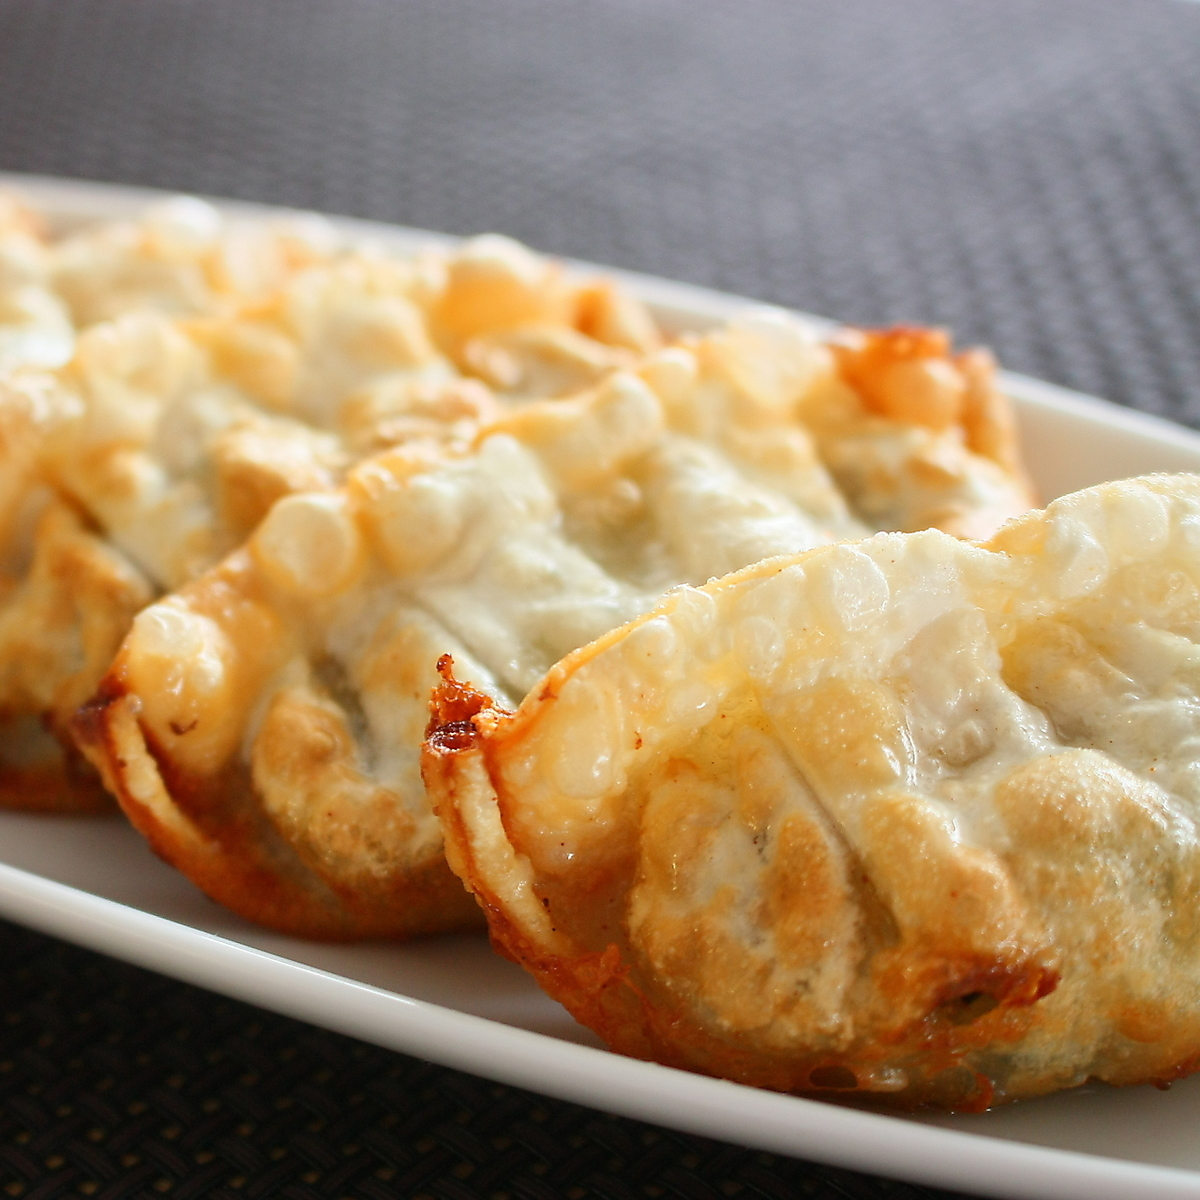 【Homemade oil gonorn sauce】 fried dumplings